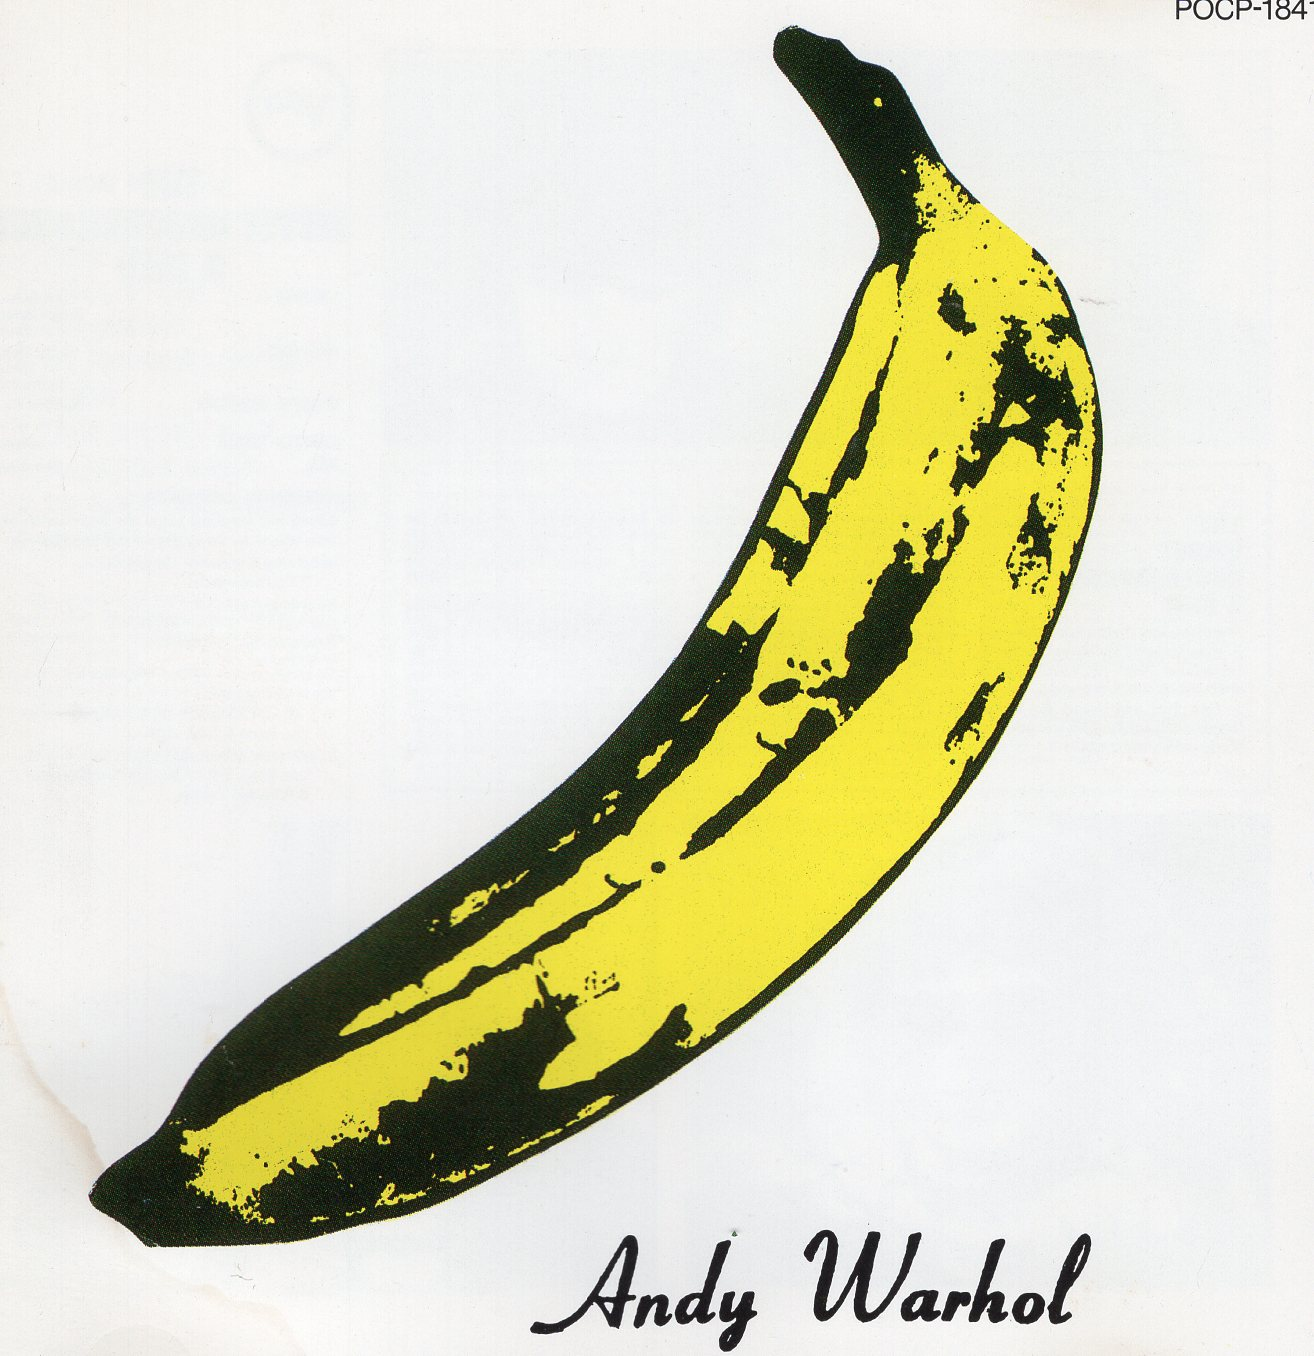 """The Velvet Underground & Nico"" The Velvet Underground"